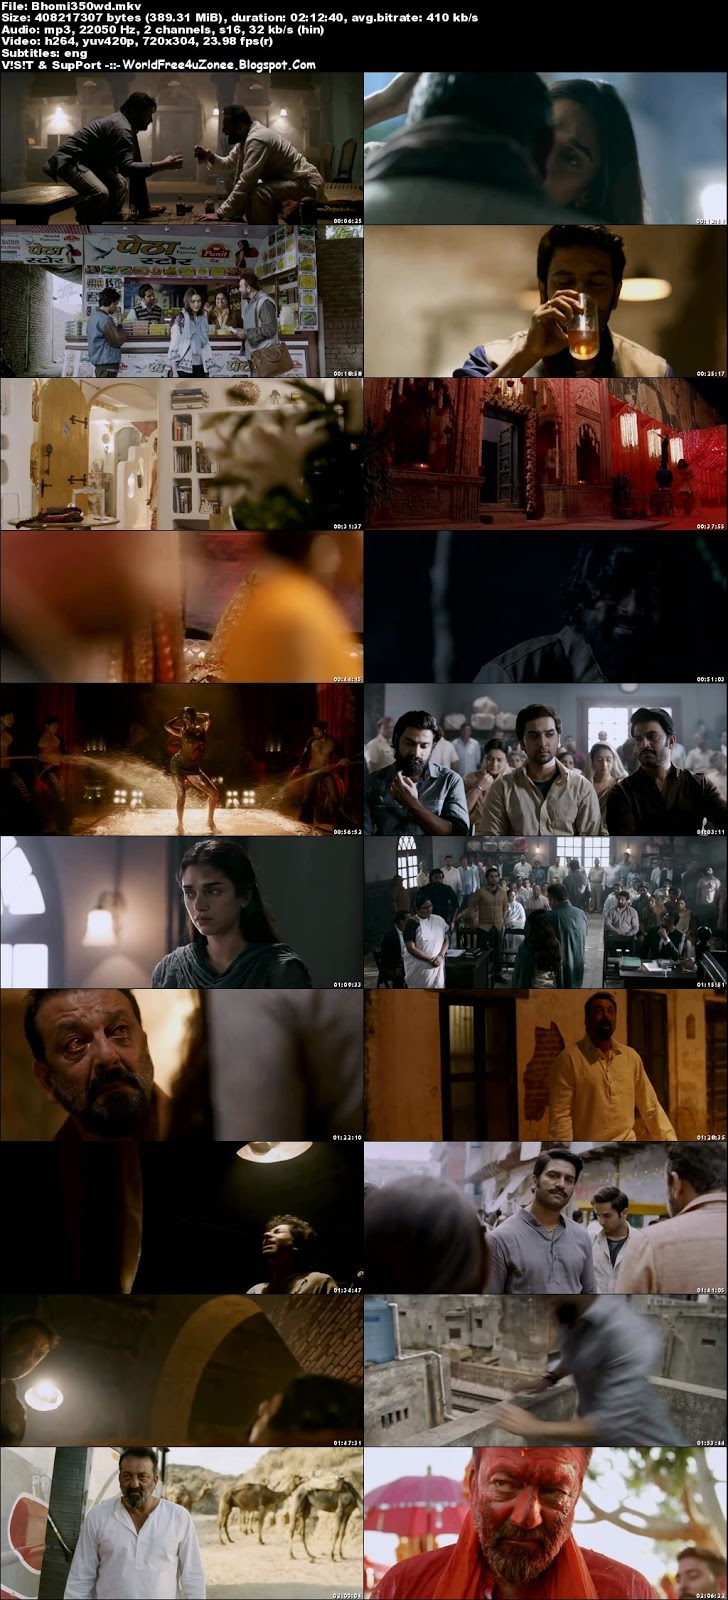 Bhoomi (2017) Hindi HDRip 480p 400MB Full Movie Free Download And Watch Online Latest Bollywood Hindi Movies 2017 Free At WorldFree4uZonee.Blogspot.Com